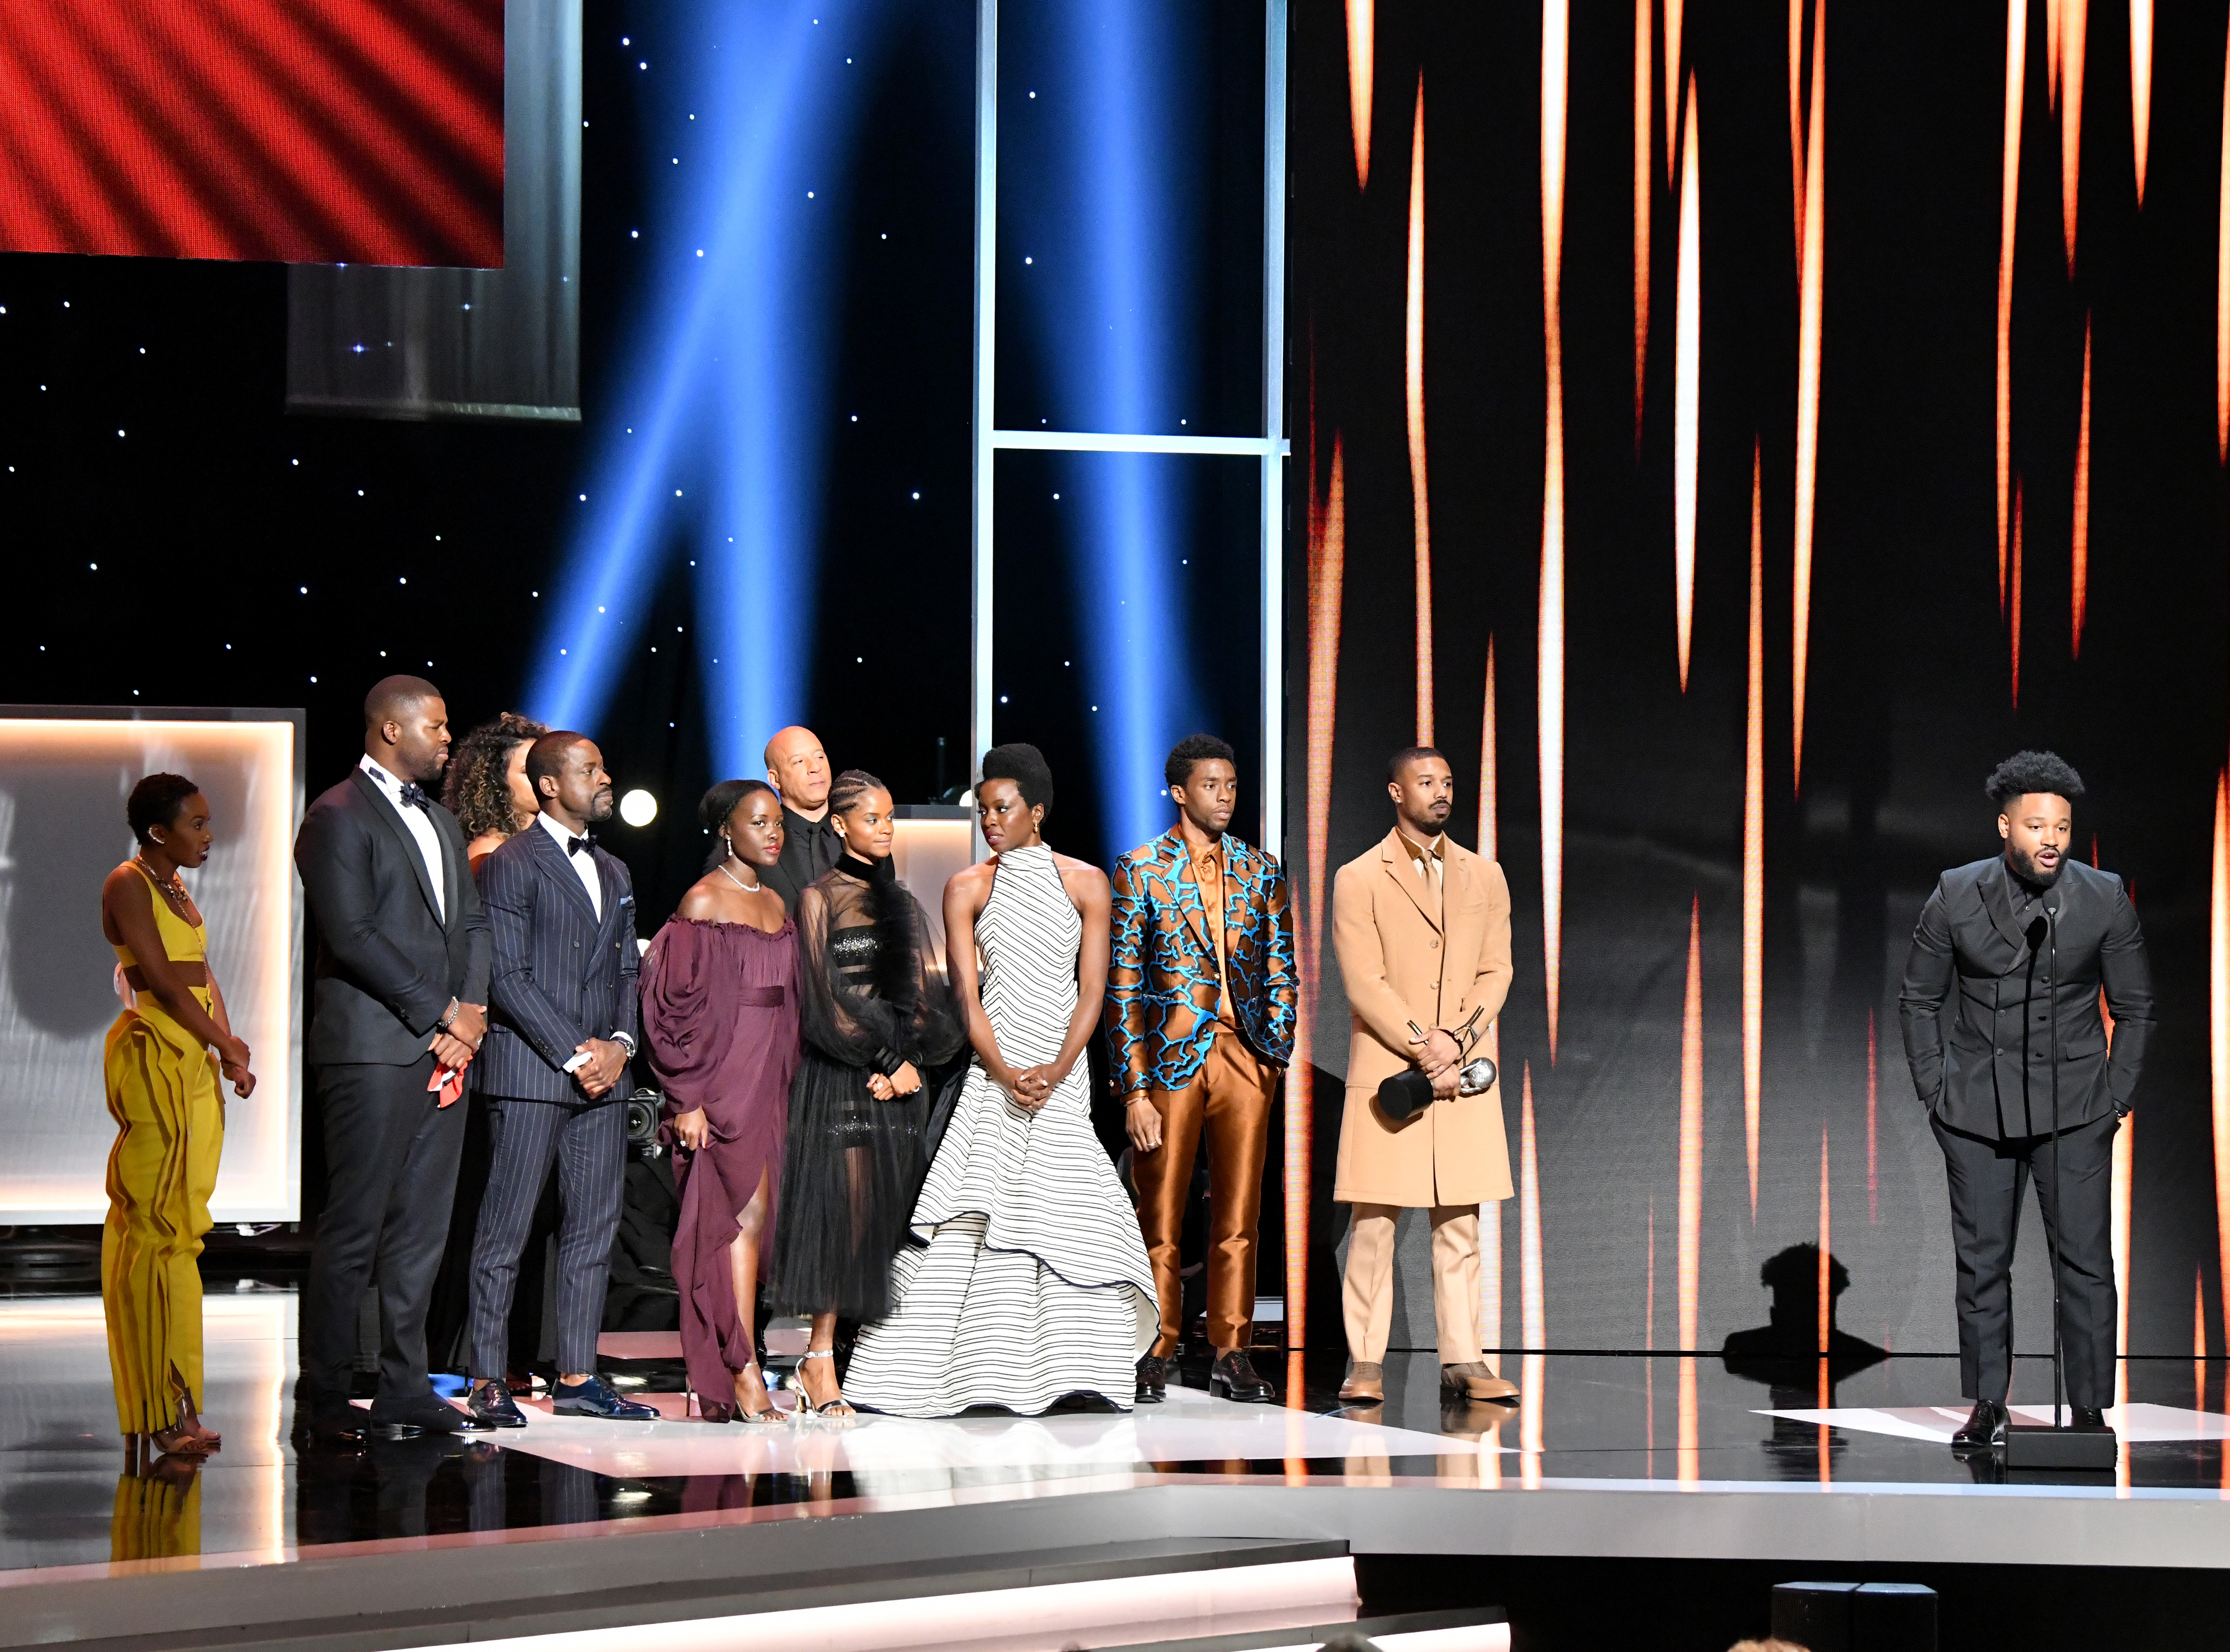 HOLLYWOOD, CALIFORNIA - MARCH 30: Vin Diesel (back center) listens while (from L) Carrie Bernans, Winston Duke, Sterling K. Brown, Lupita Nyong'o, Letitia Wright, Danai Gurira, Chadwick Boseman, Michael B. Jordan, and Ryan Coogler accept the Outstanding Motion Picture award for 'Black Panther' onstage at the 50th NAACP Image Awards at Dolby Theatre on March 30, 2019 in Hollywood, California. (Photo by Earl Gibson III/Getty Images for NAACP)